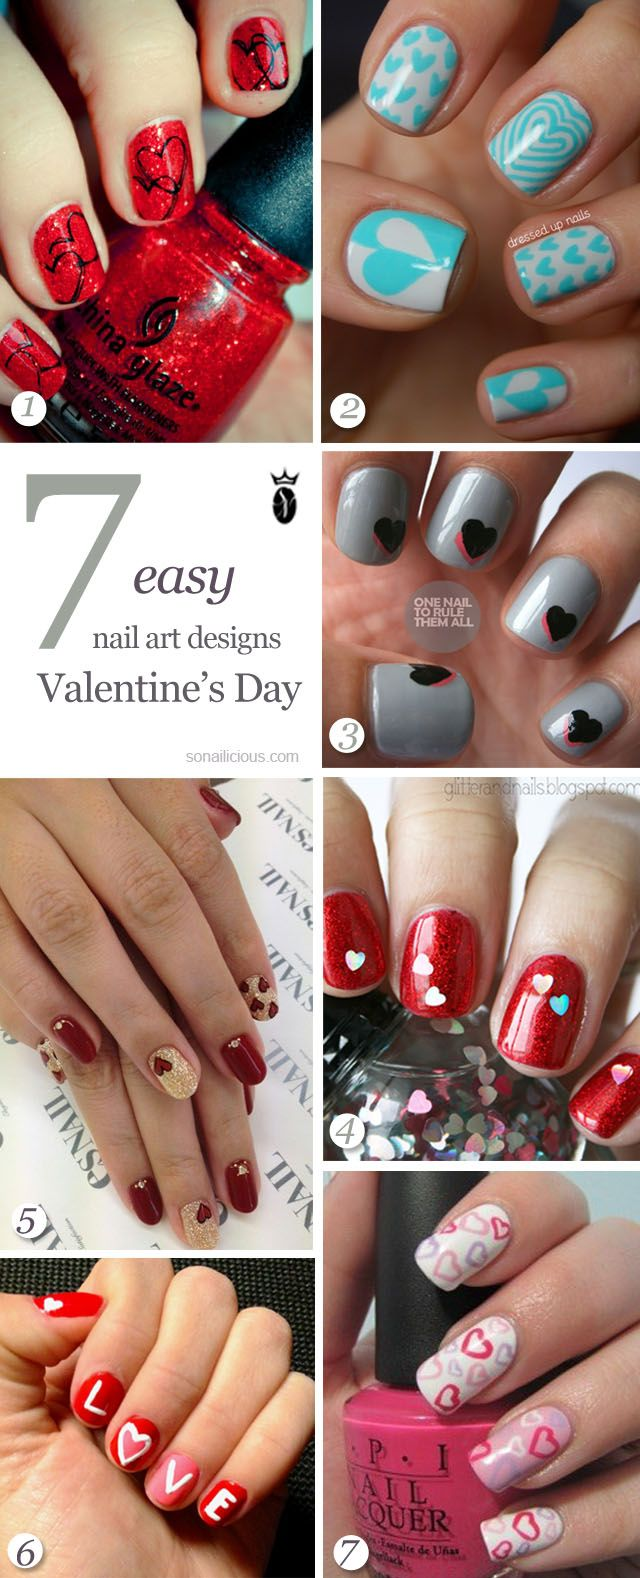 Valentines Day nails - cute ideas!